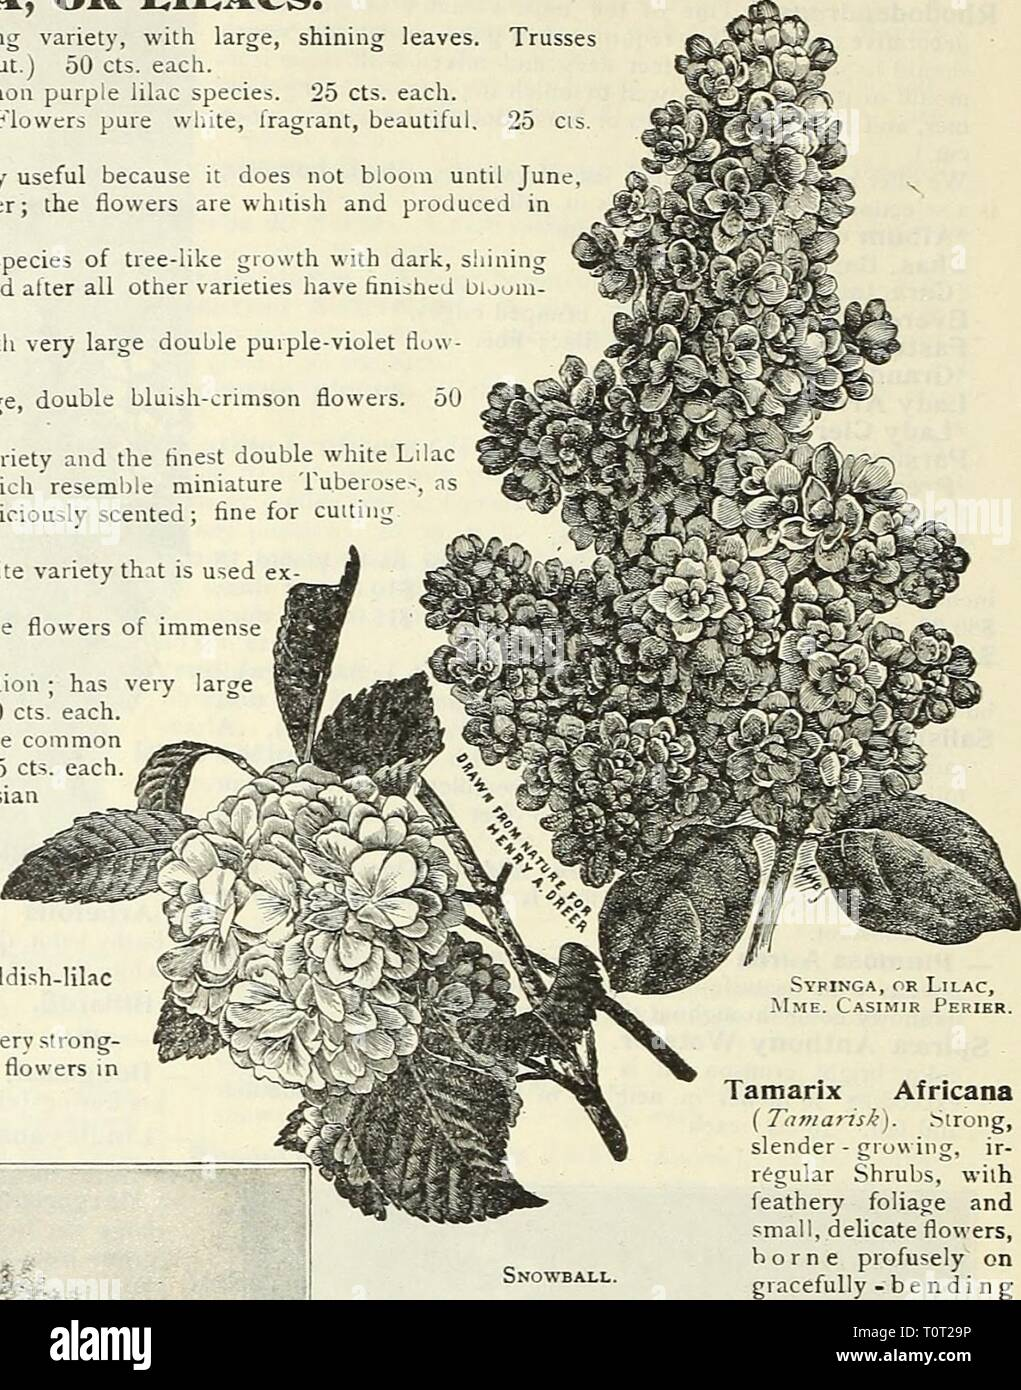 Dreer's garden book  1905 Dreer's garden book : 1905  dreersgardenbook1905henr Year: 1905  Lilac Charles X. A strong, rapid growing variety, with large, shining leaves rather loose; large, reddish-purple. (See cut.) 50 cts. each. â â Common {Svr/no-a vulgaris). Fhe common purple lilac species. 25 cts. each. â Common White (^S. vulgaris alba). Flowers pure white, fragrant, beautifu each. â Emodi. Entirely distinct, and particularly useful because it does not bloom until June, when all other varieties are out of flower; the flowers are whitish and produced in loose heads. 25 cts. each. â Josikae - Stock Image